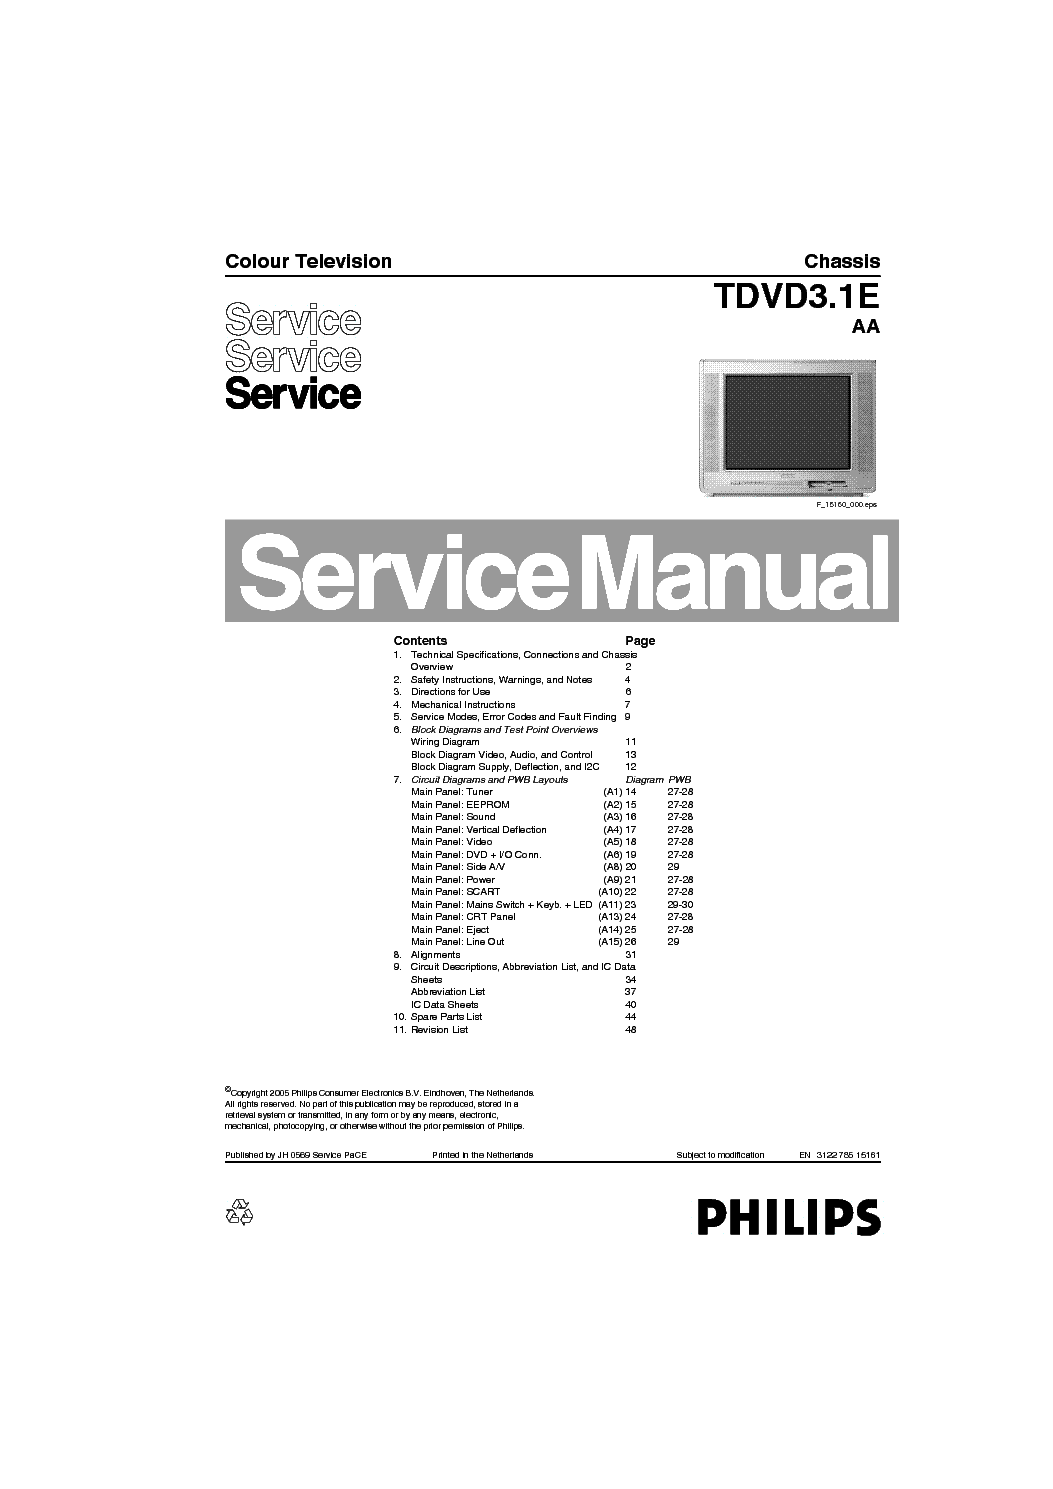 PHILIPS TVD3.1E AA CHASSIS TV DVD service manual (1st page)